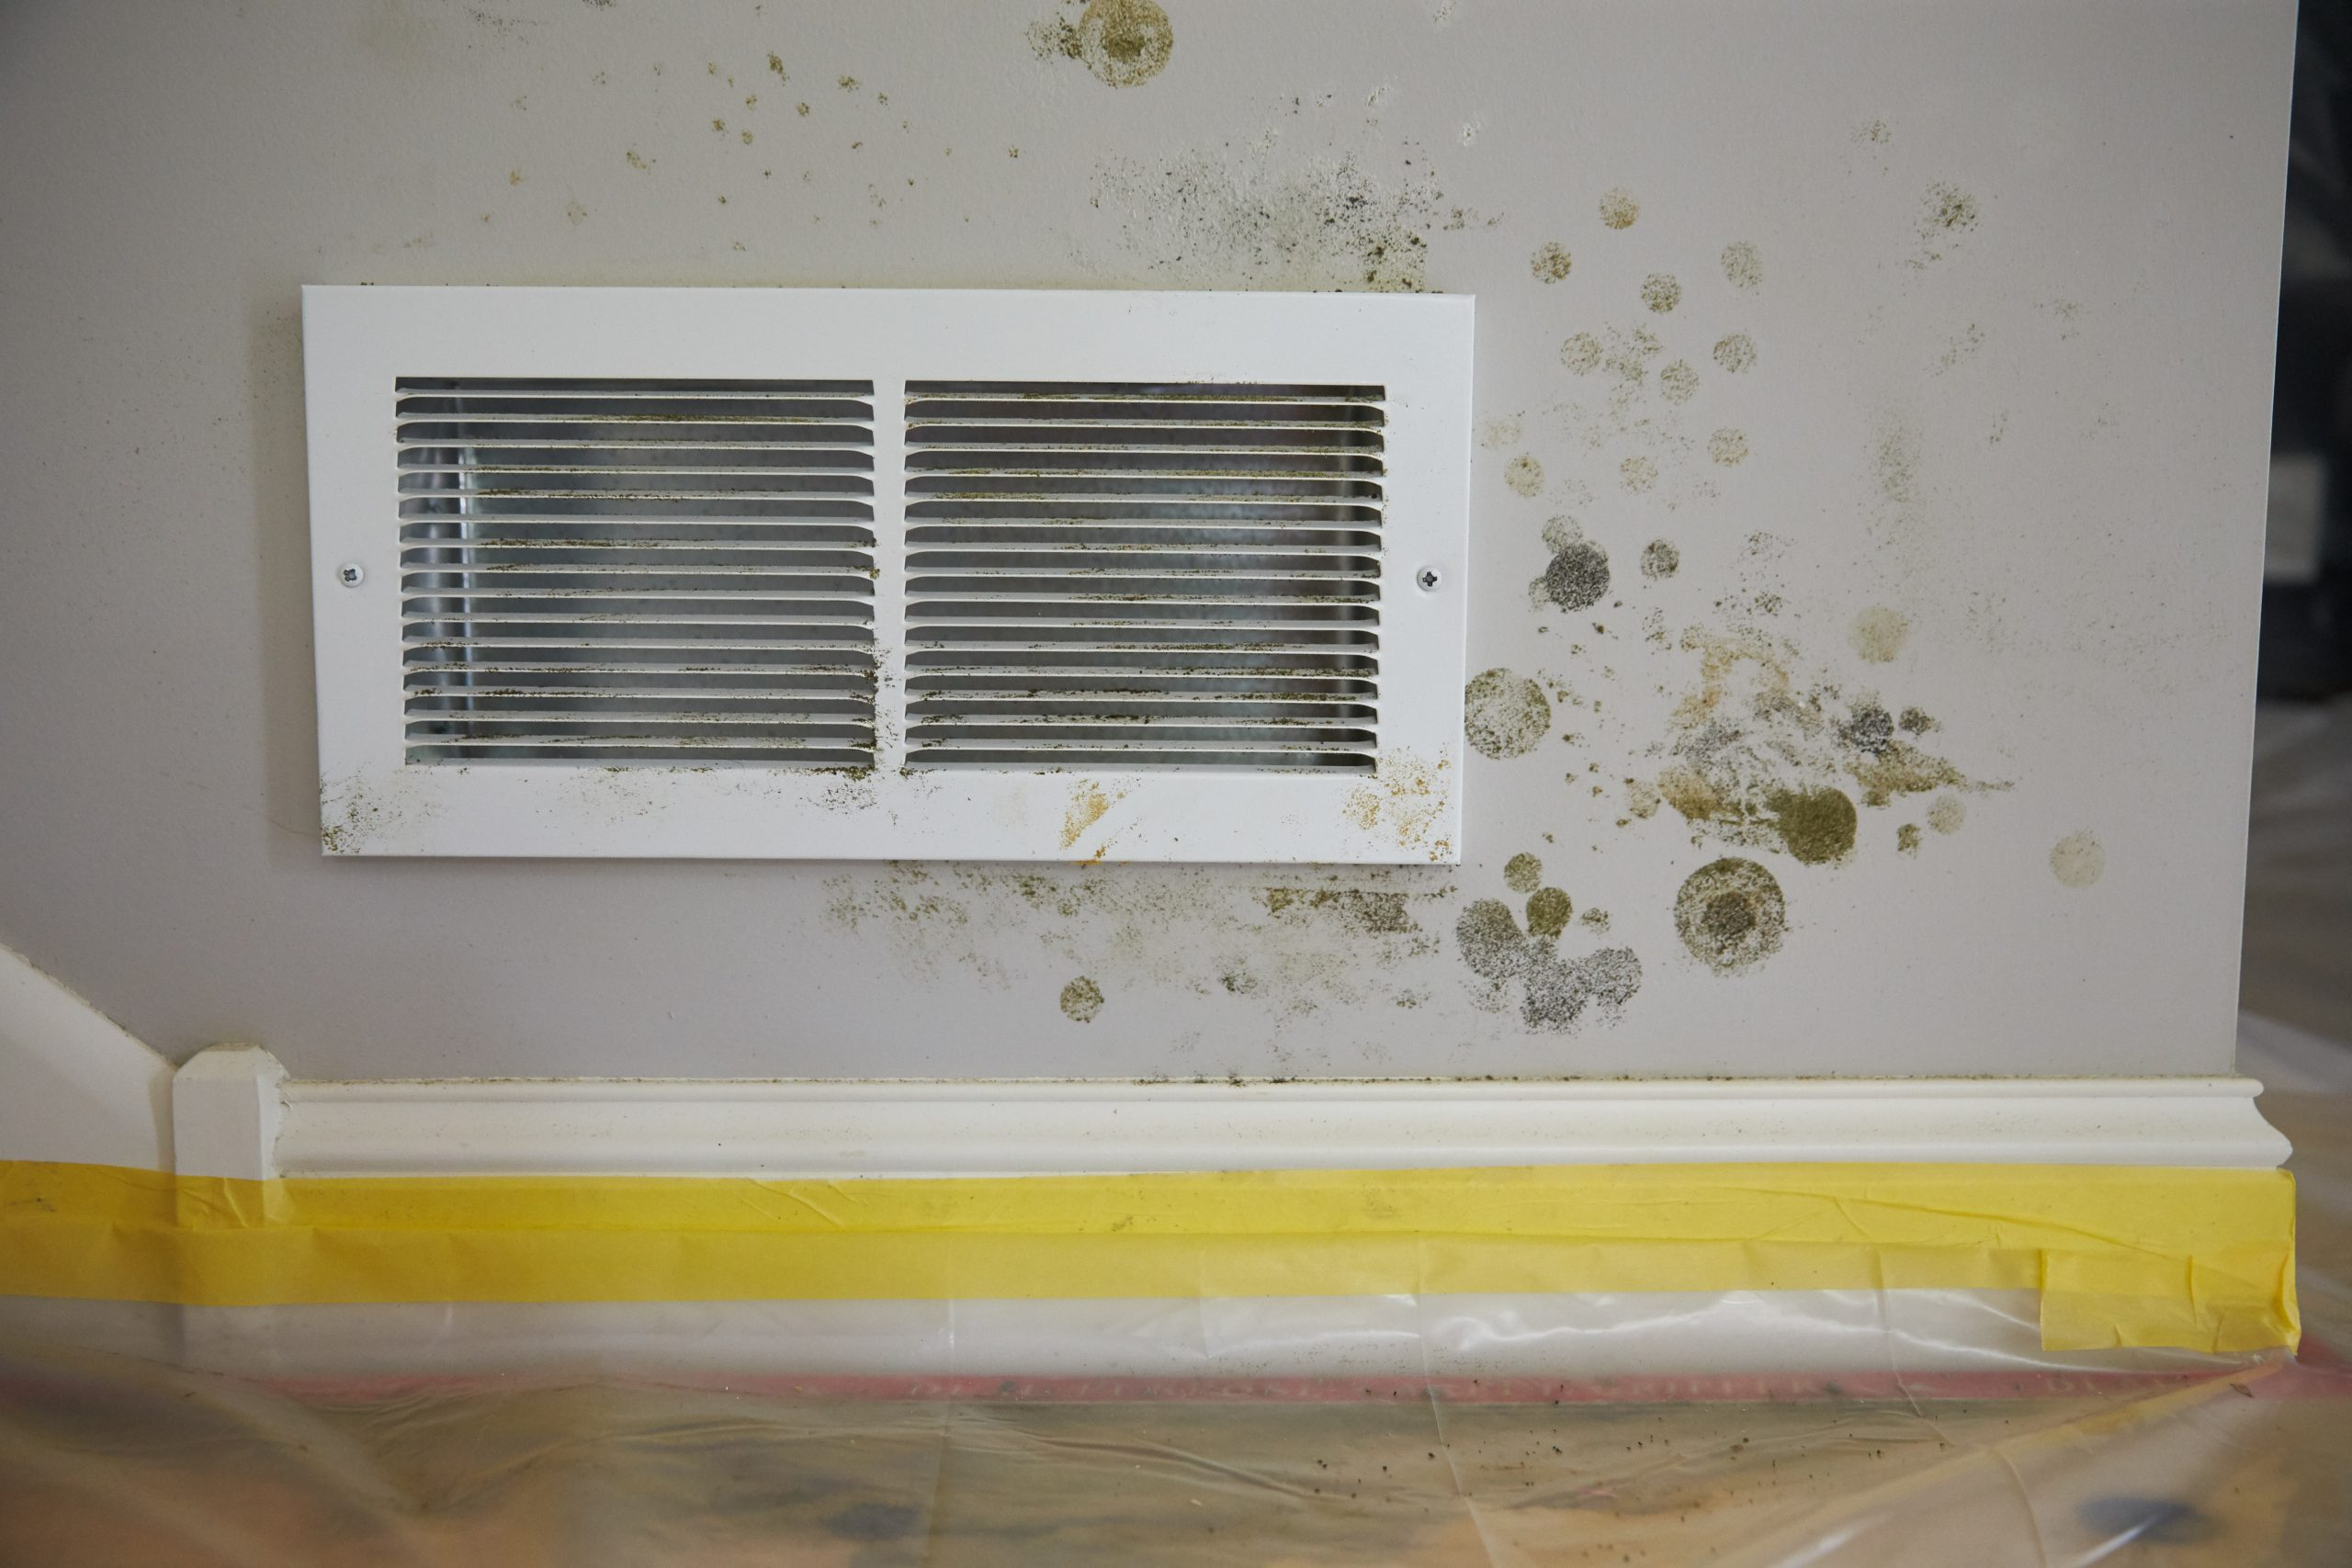 5 Signs of Mold Growth in Your HVAC System